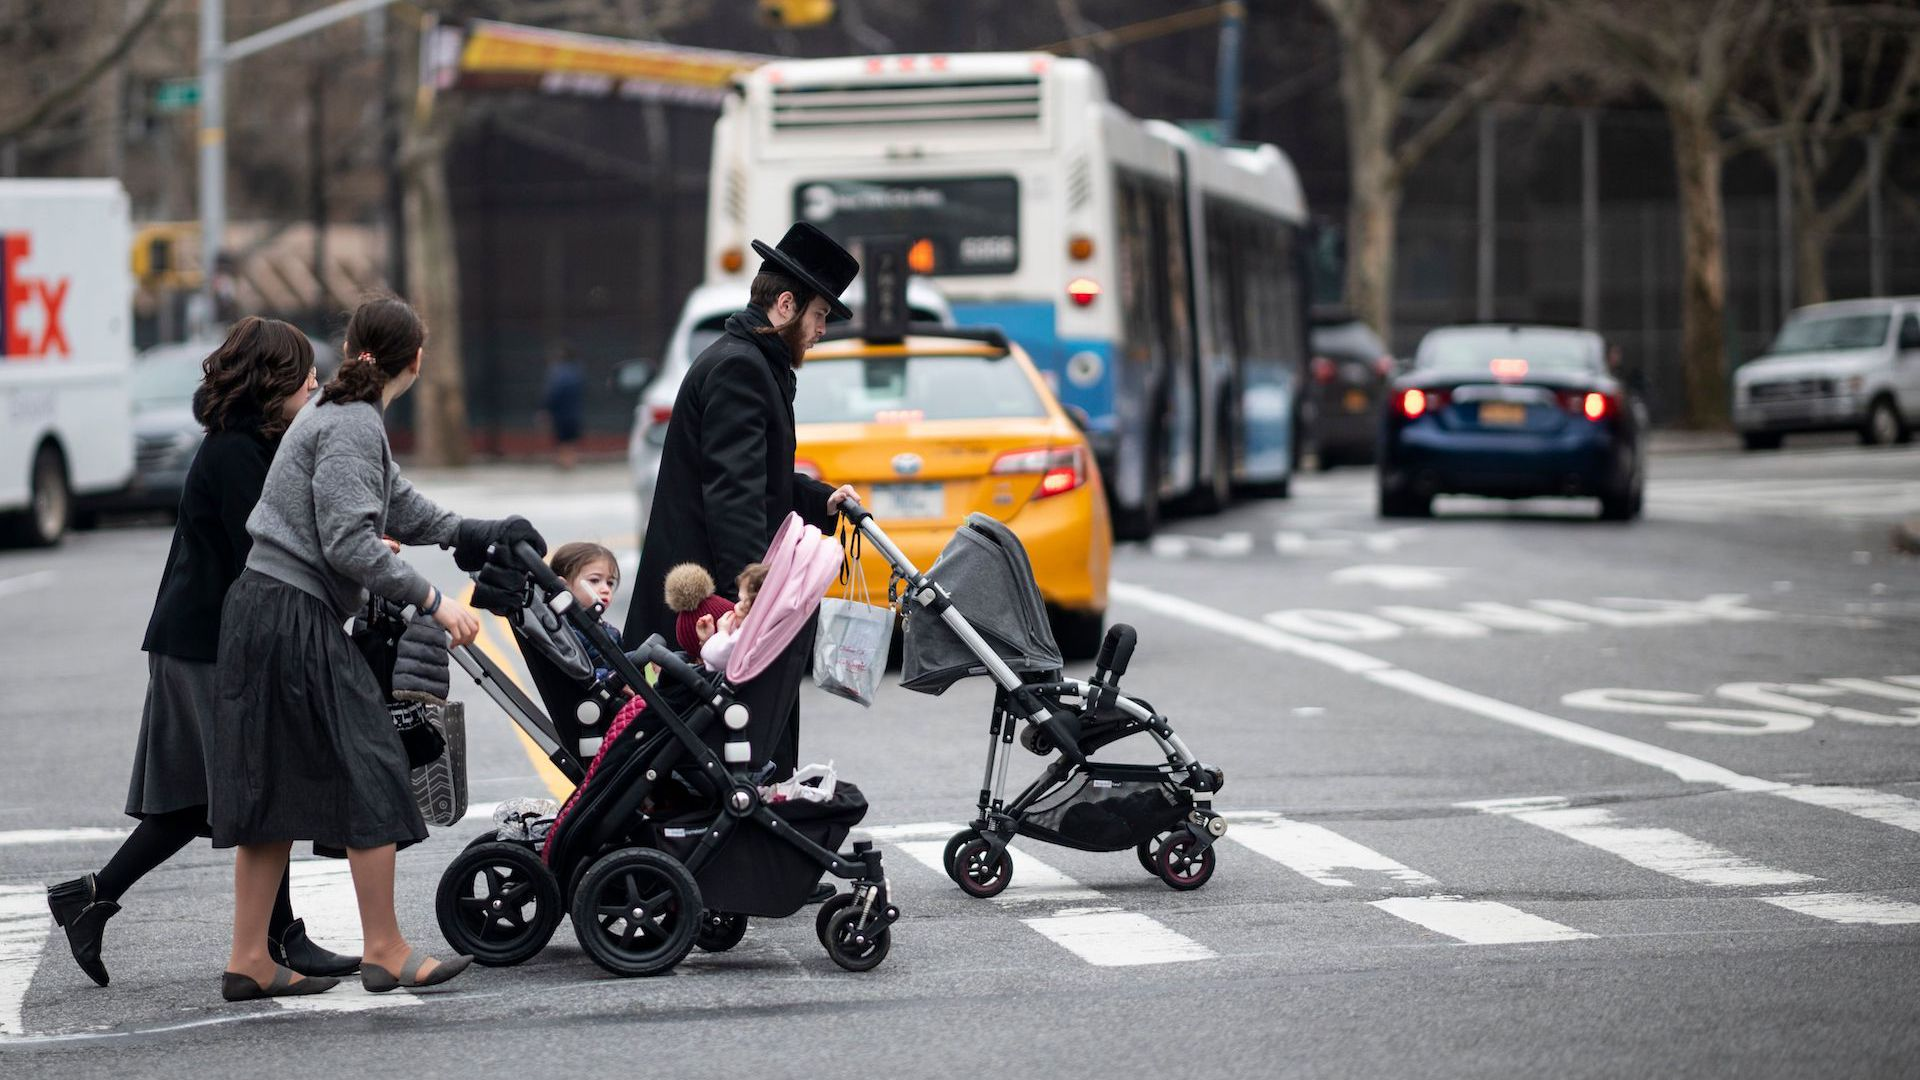 Orthodox Jewish parents push children in strollers in Williamsburg, Brooklyn, where a measles outbreak is underway